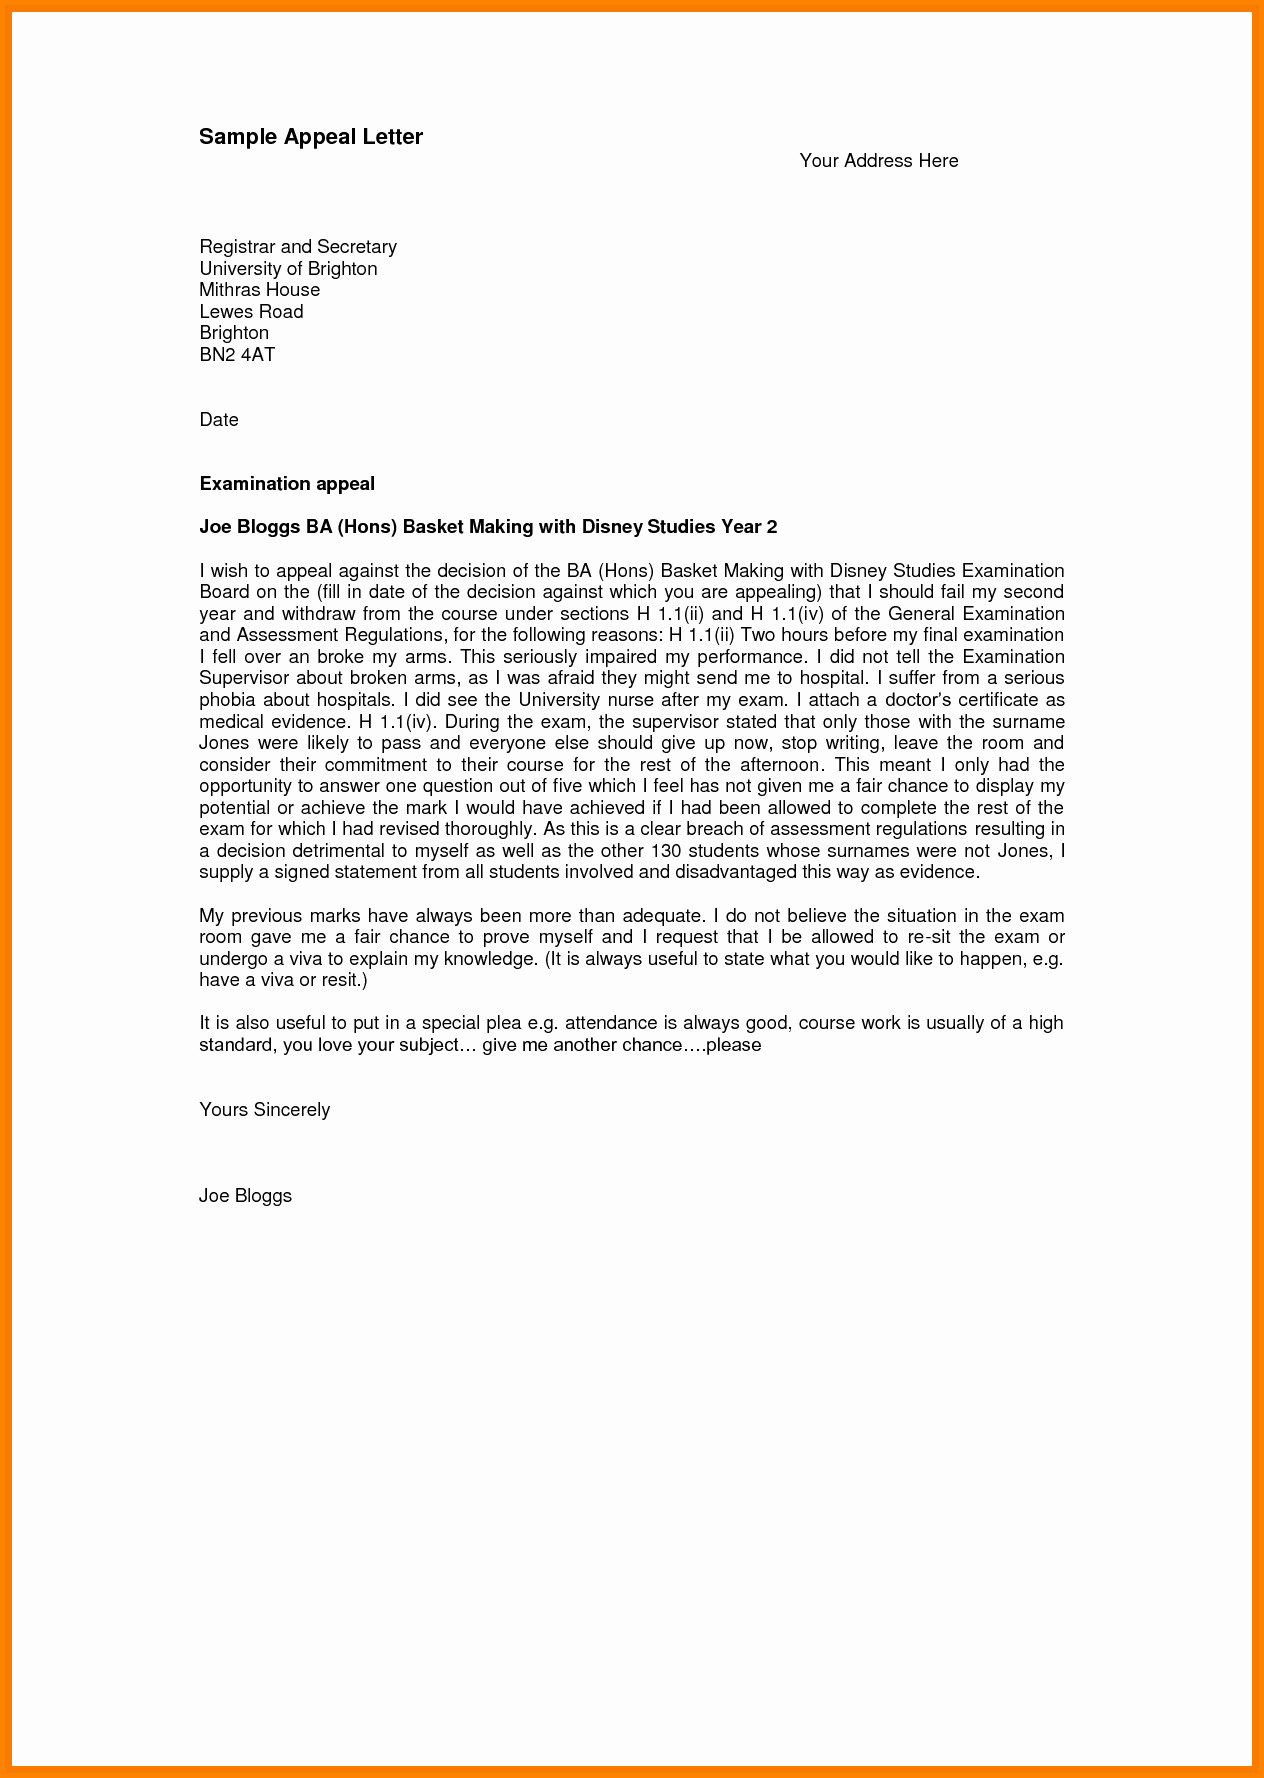 Sap Appeal Letter Examples Lovely 12 Sap Appeal Letter Template